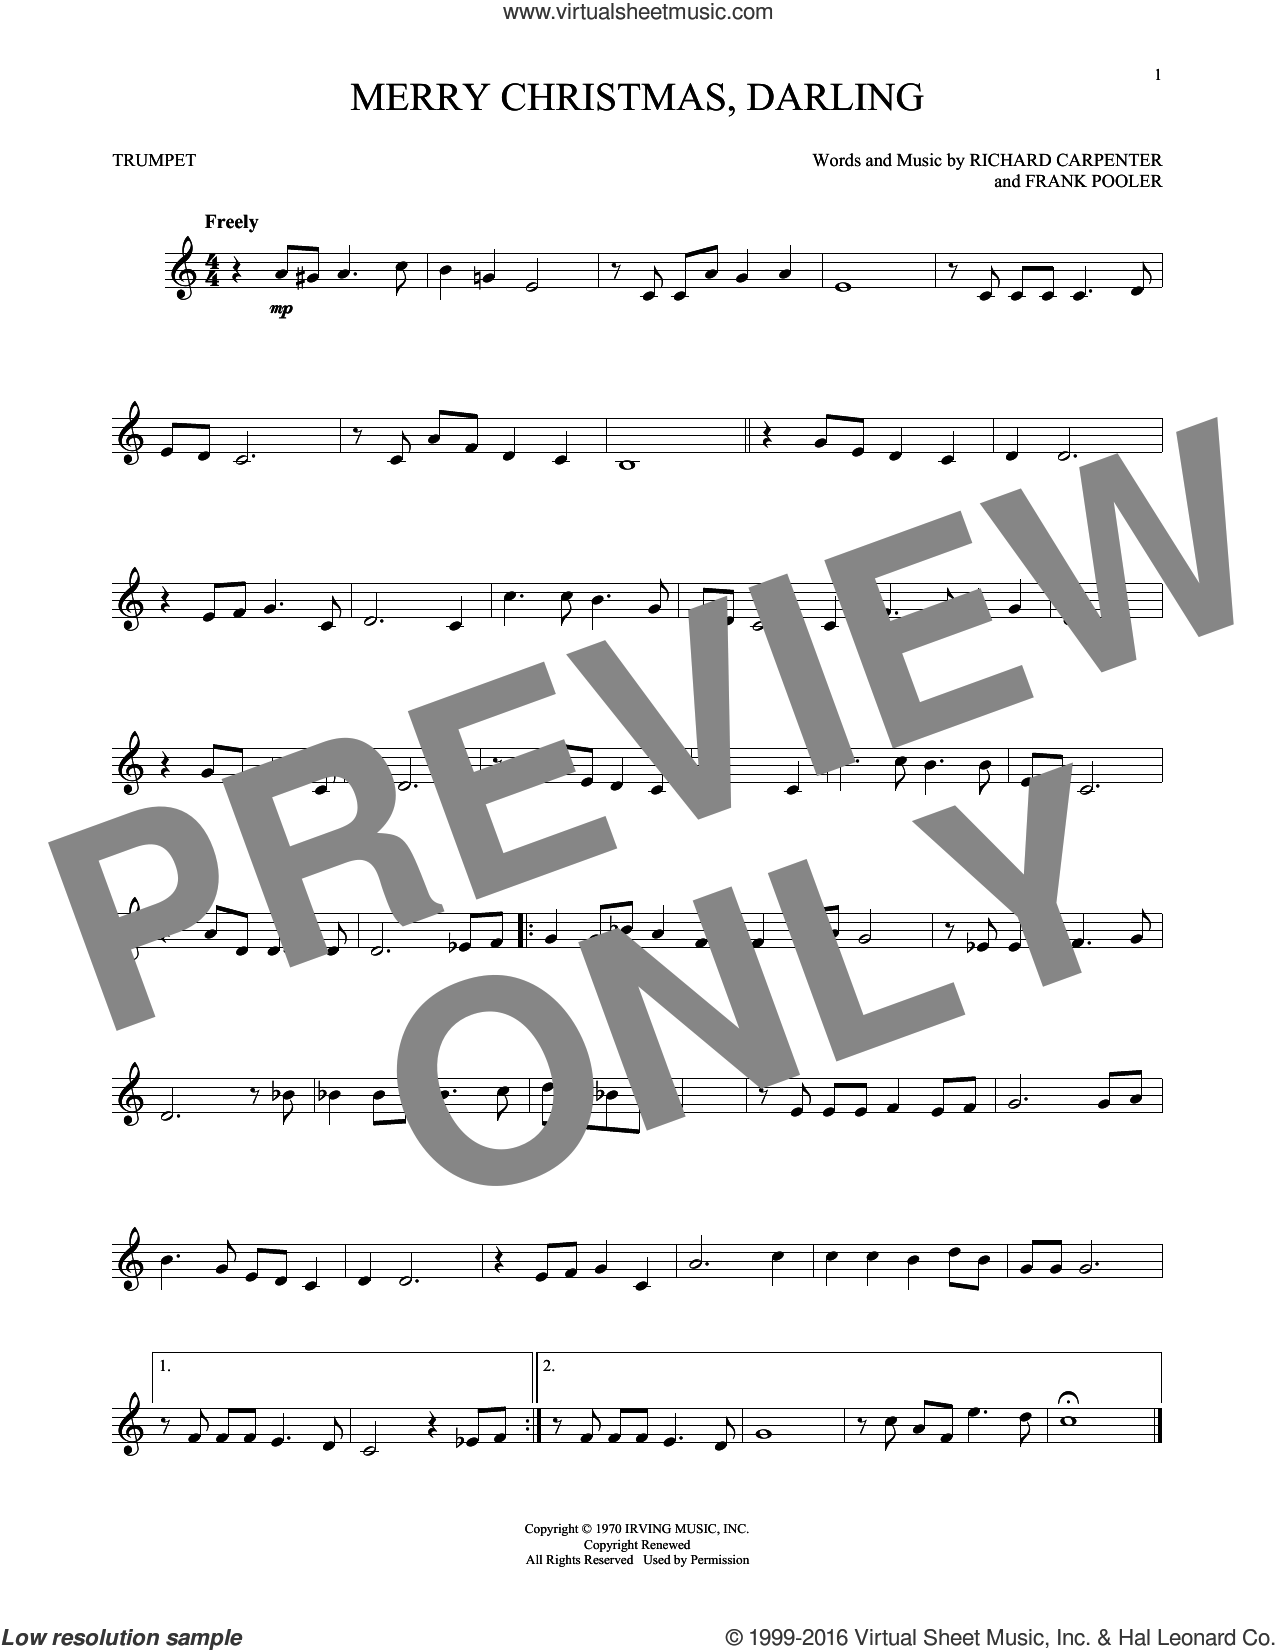 Merry Christmas, Darling sheet music for trumpet solo by Carpenters, Frank Pooler and Richard Carpenter, intermediate skill level